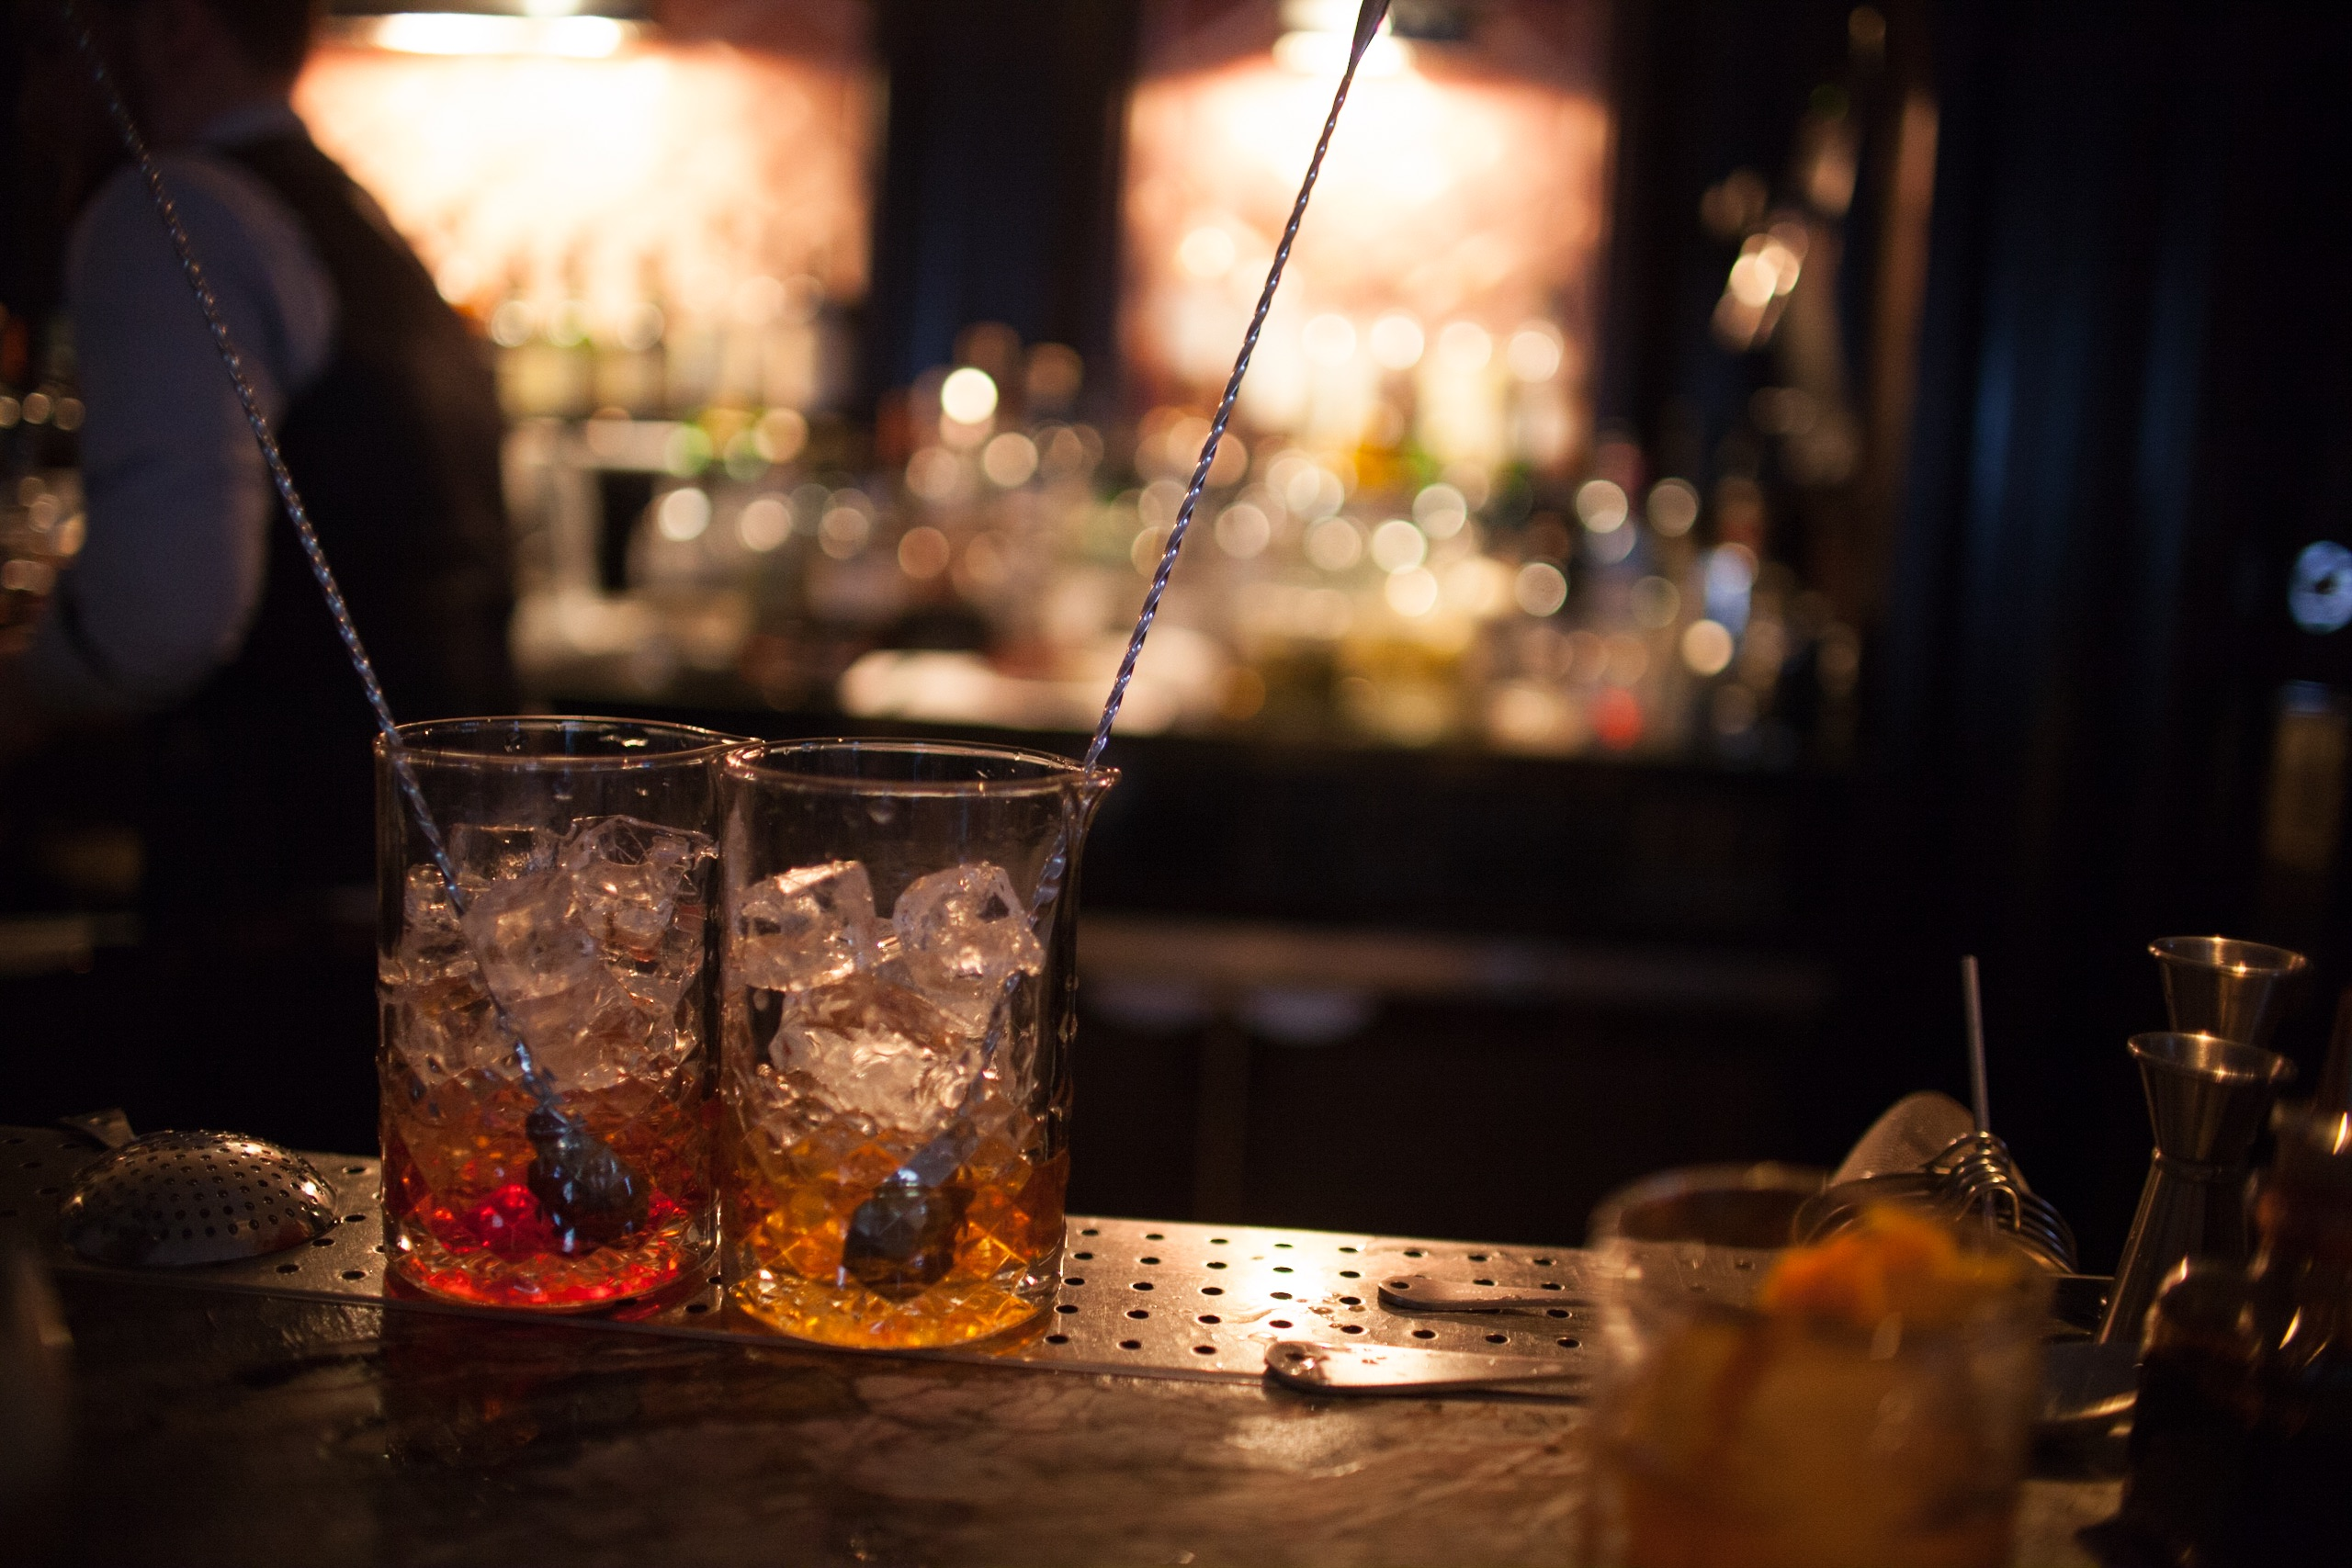 The Luggage Room negroni and old fashioned